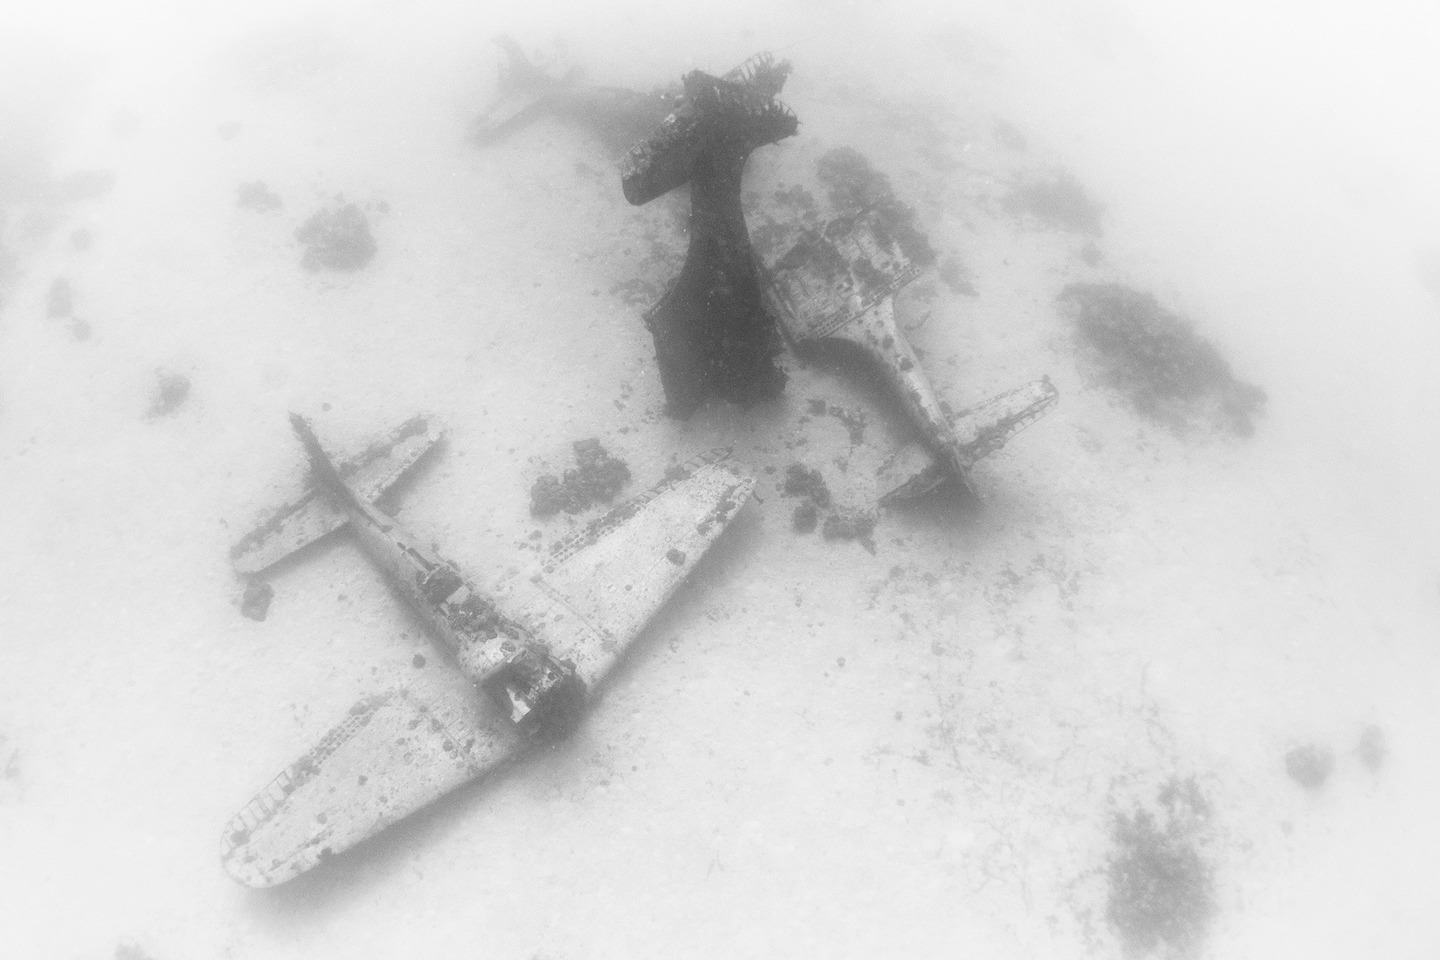 The Pacific Ocean Bed Is A Graveyard For World War II Planes  dsc7811